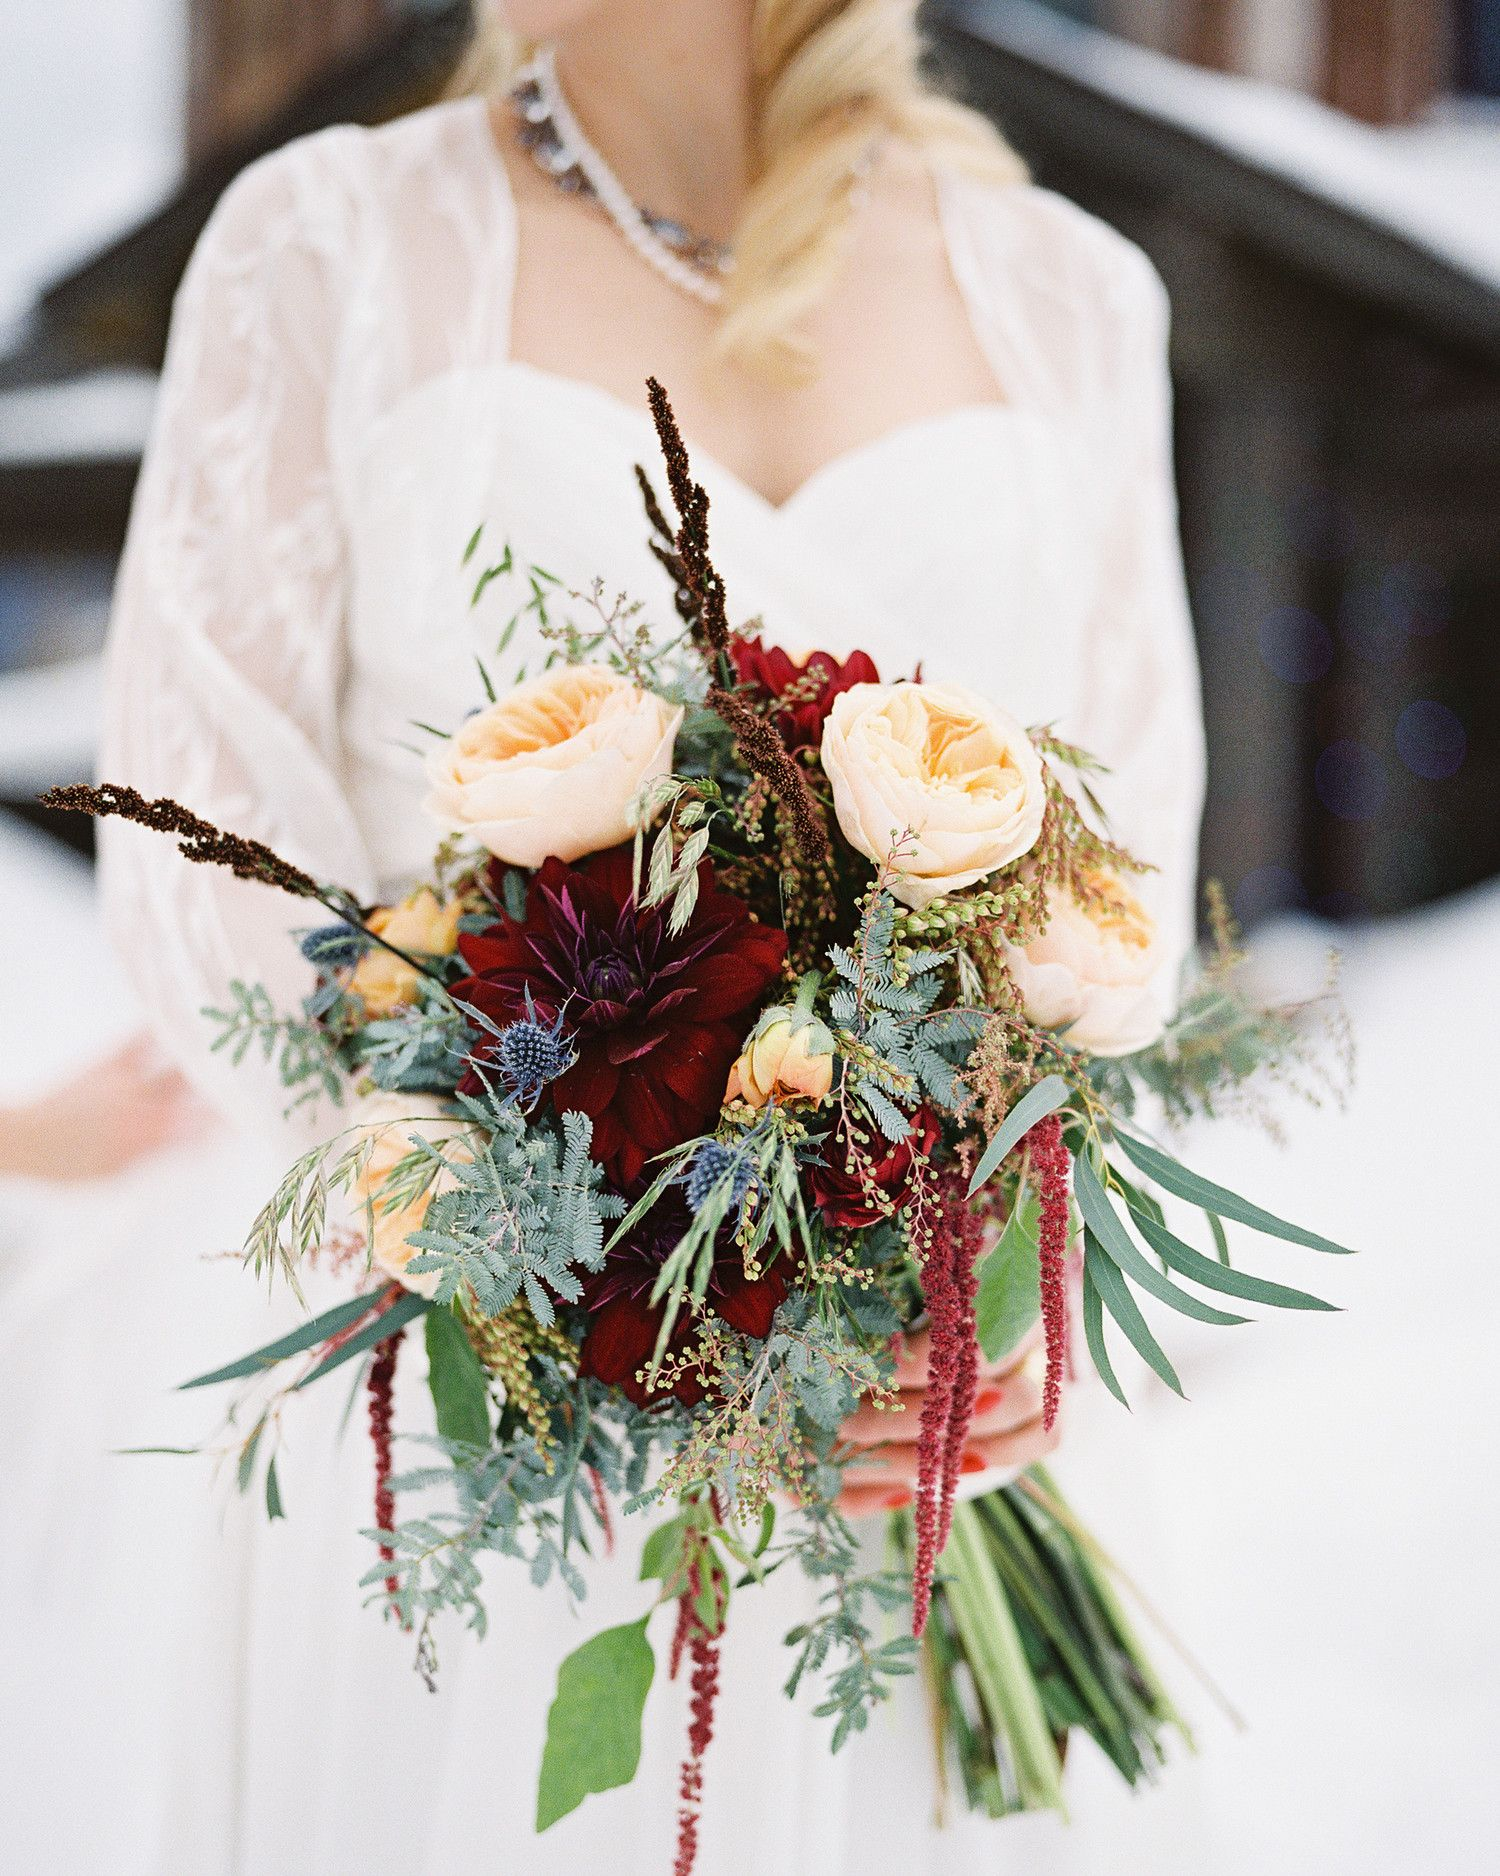 winter wedding bouquets ideas with greenery, ranunculus, hanging amaranthus, and roses